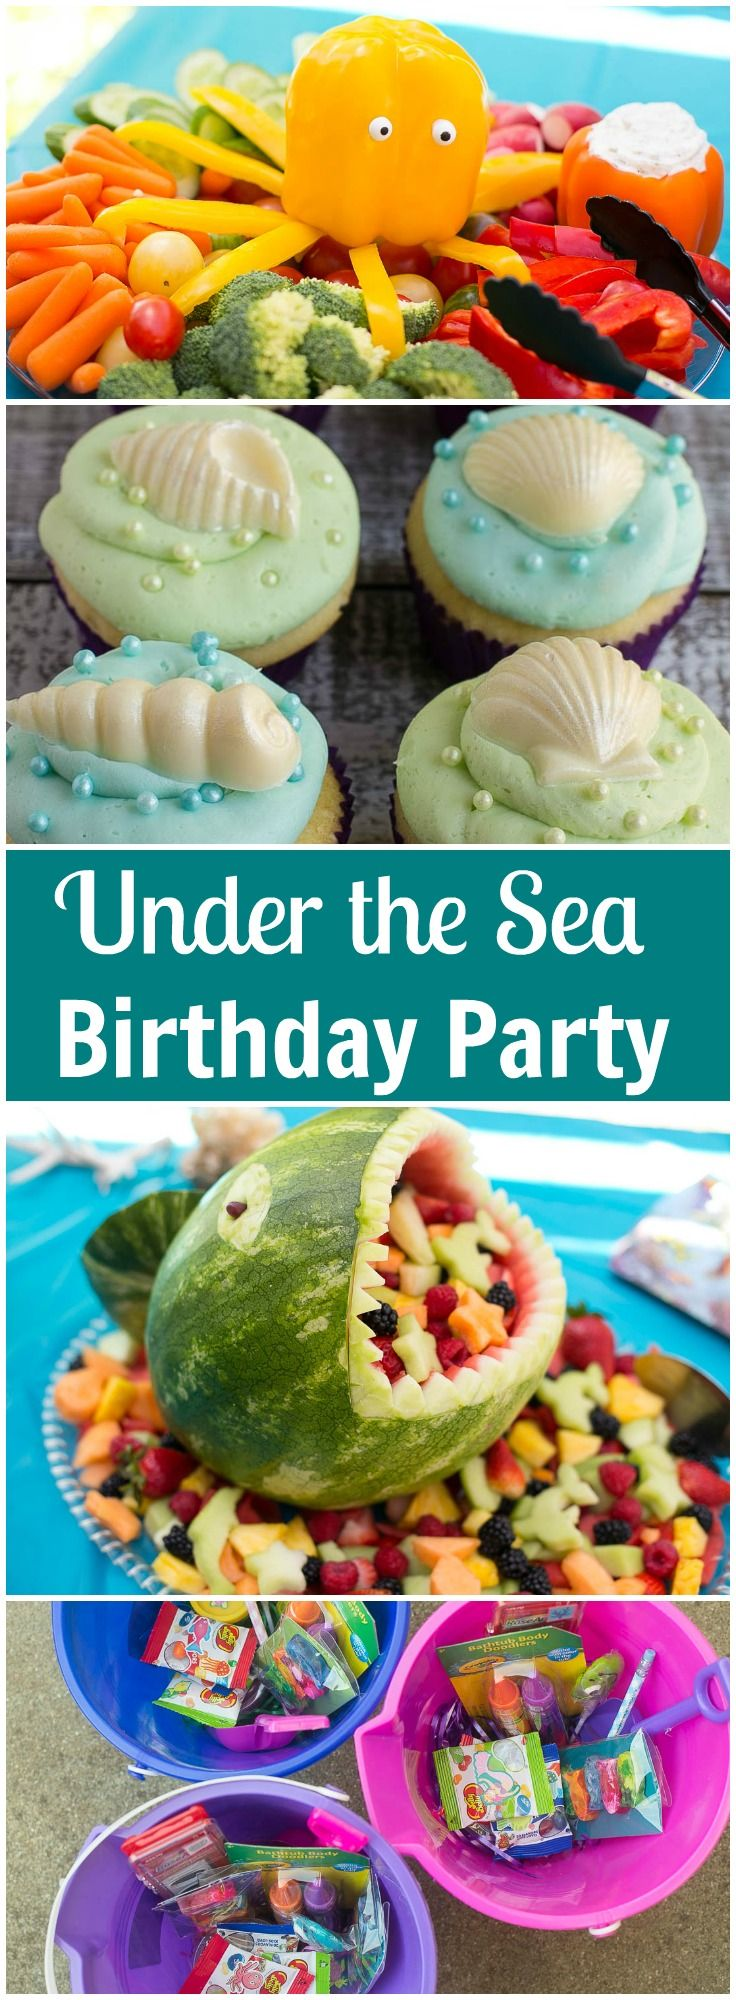 DIY for an Under the Sea birthday party - ideas for food, decorations, favors and more!